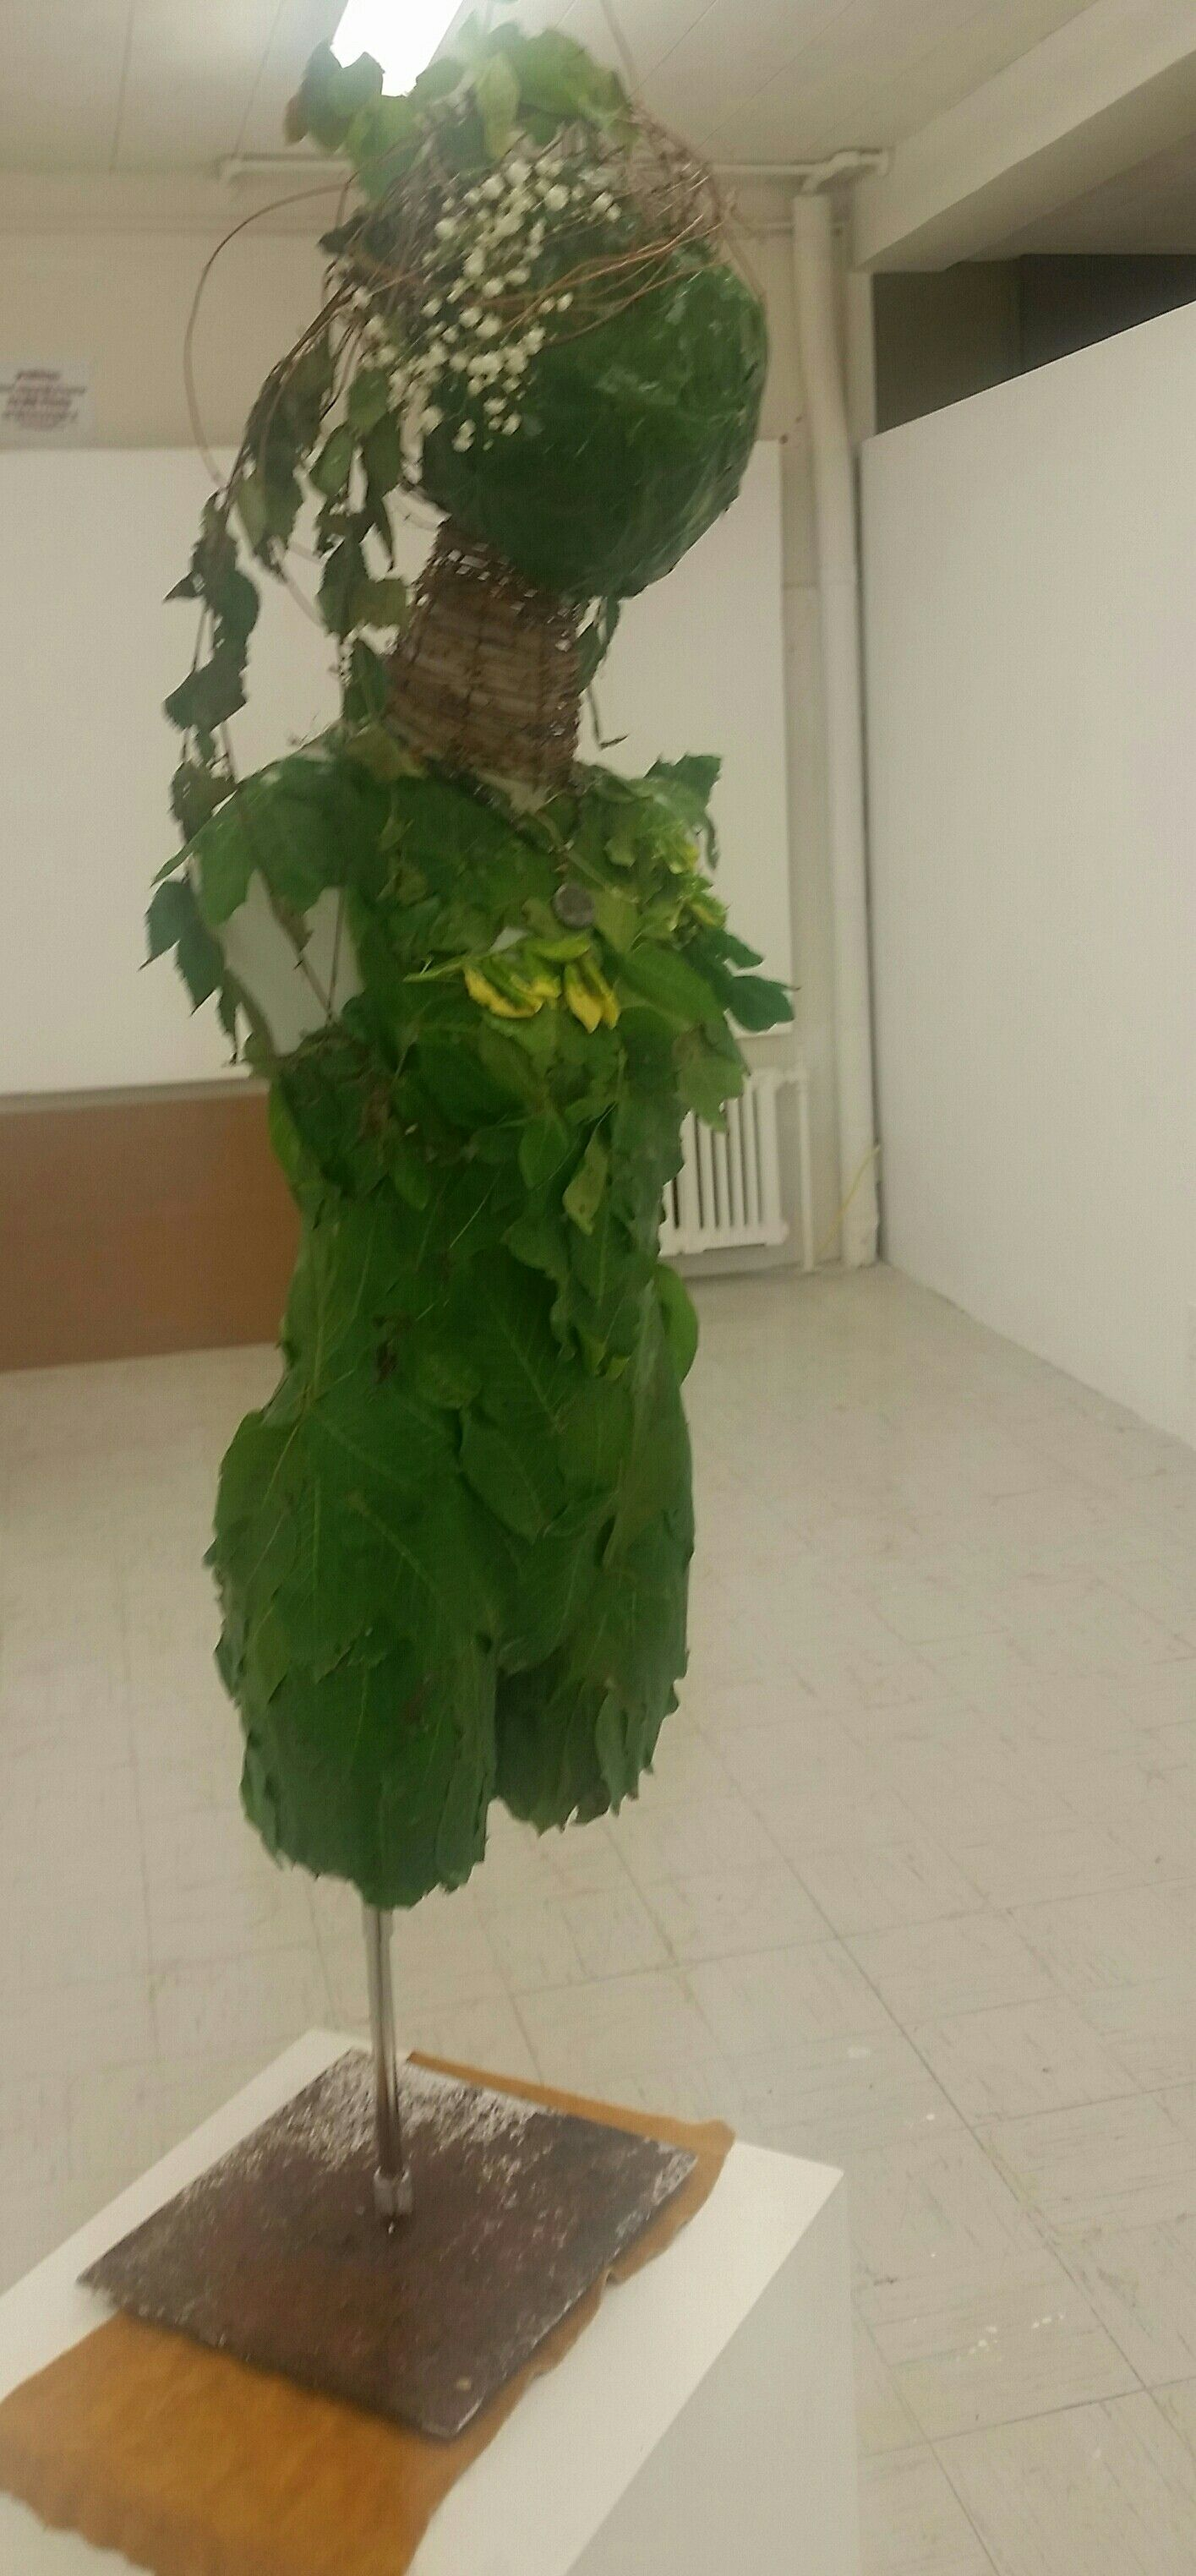 Dryaid Decending Is An Art Sculpture Made From Composted Grapevine Maple And Walnut Leaves Wildflowers Broken Dress Form